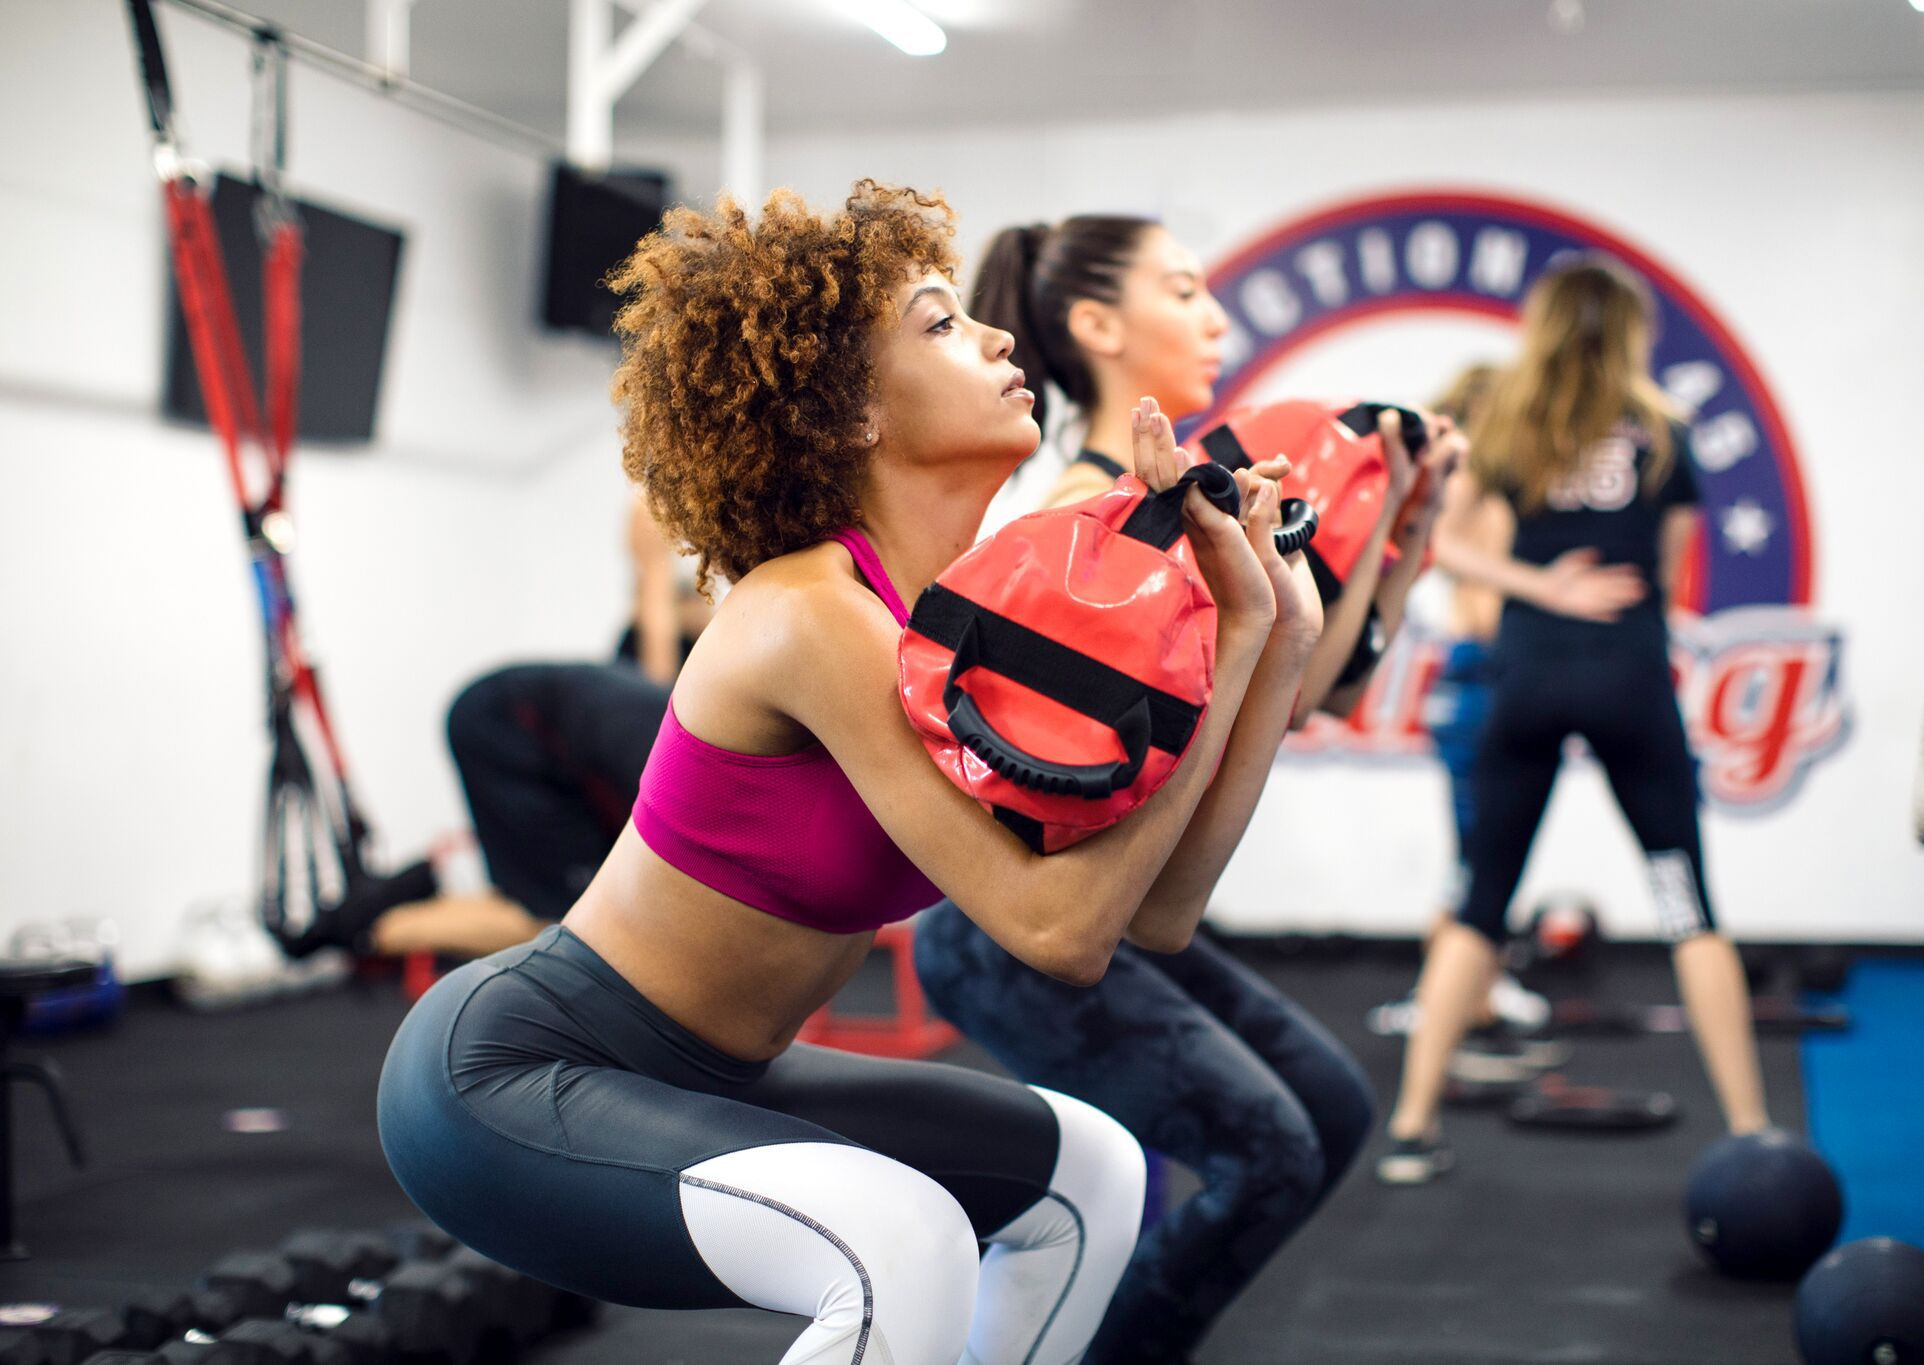 Meet F45 Training, The Global Fitness Craze That Could Be The Next Orangtheory